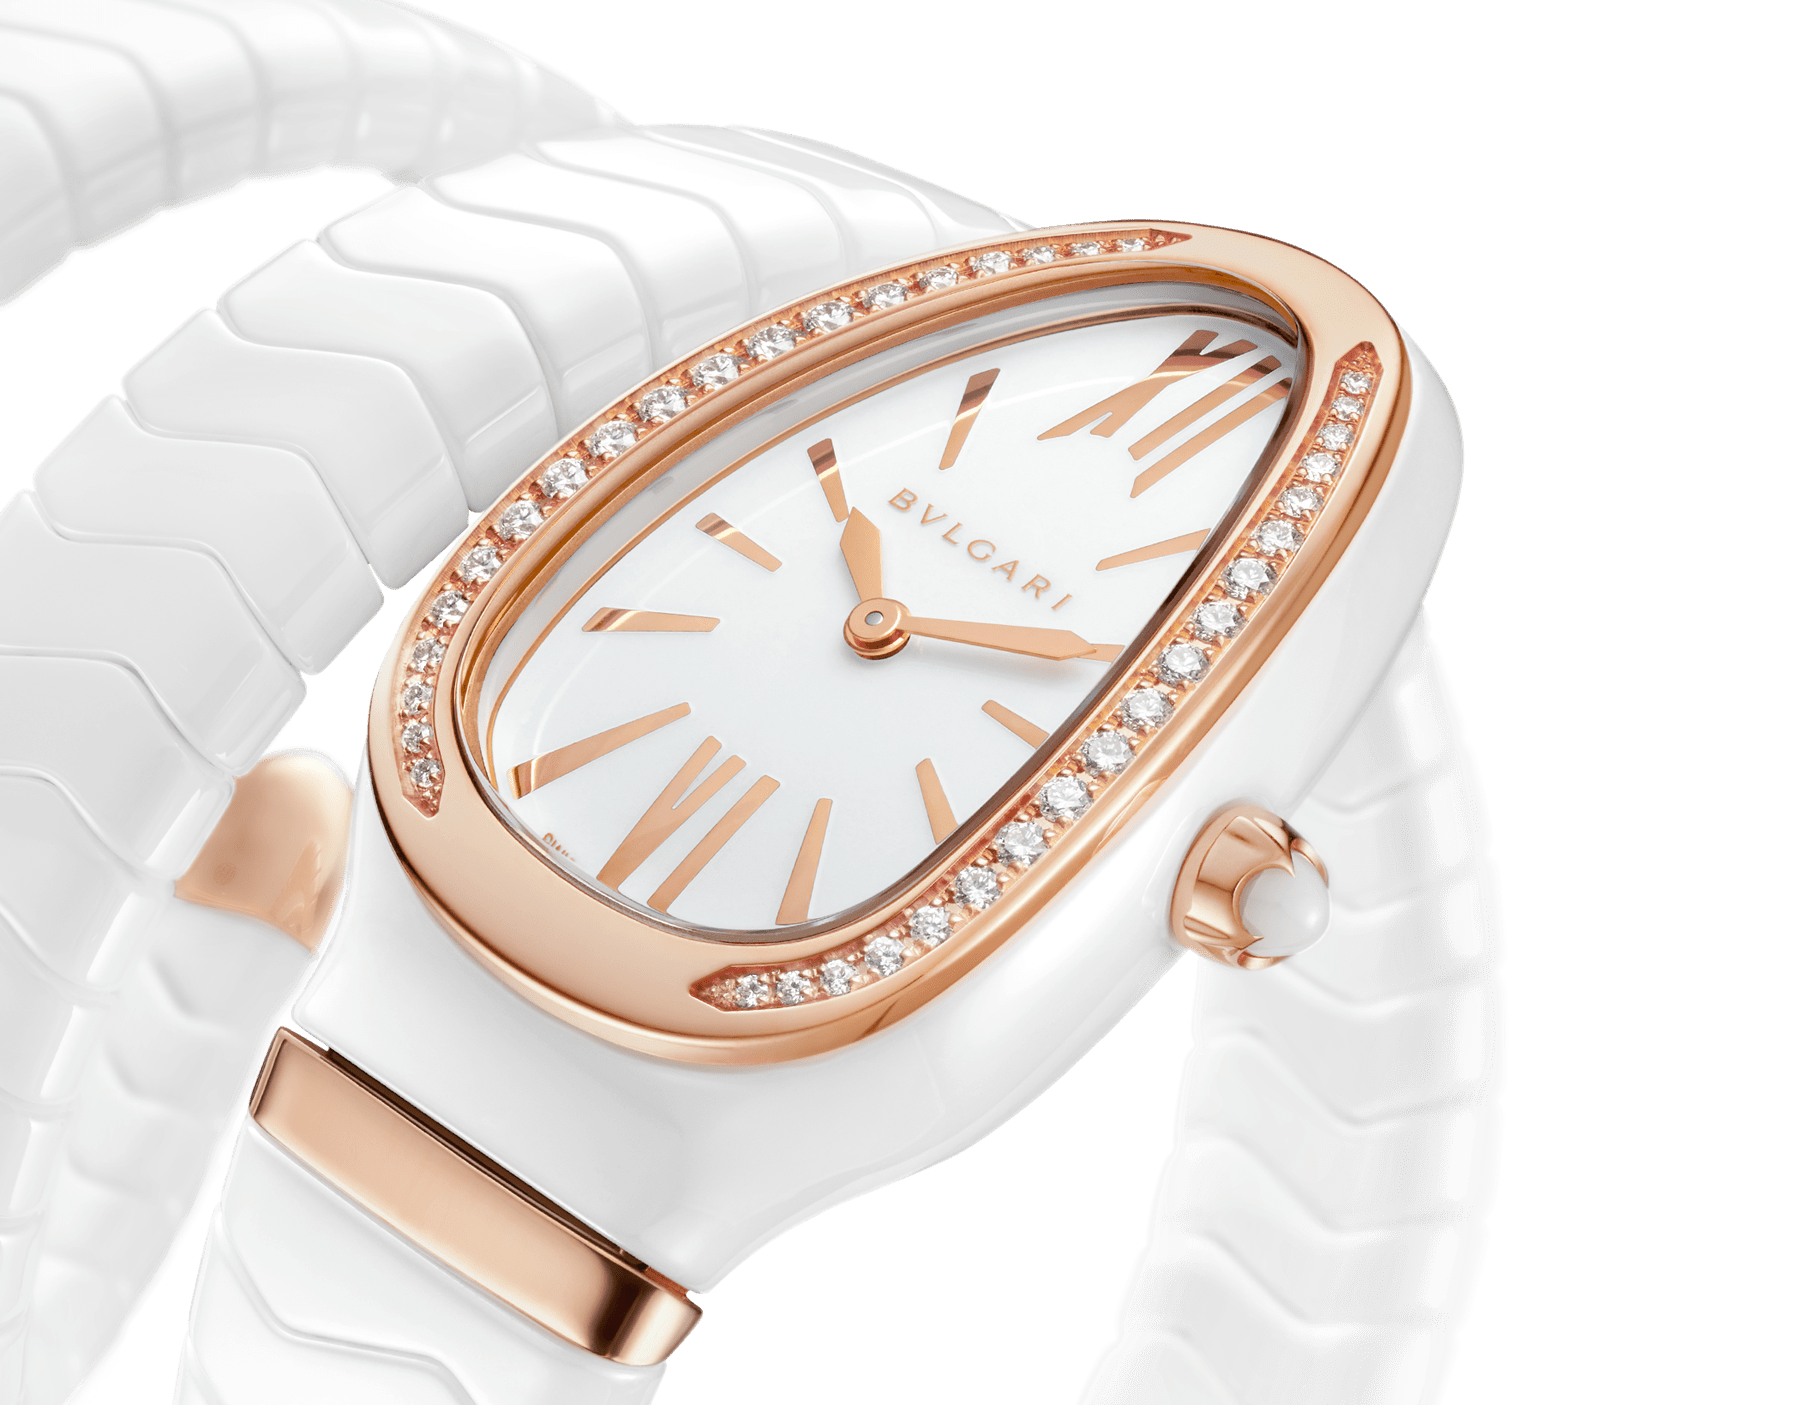 Serpenti Spiga watch with white ceramic case, 18 kt rose gold bezel set with diamonds, white lacquered polished dial and double spiral bracelet in white ceramic and 18 kt rose gold elements. 102886 image 3